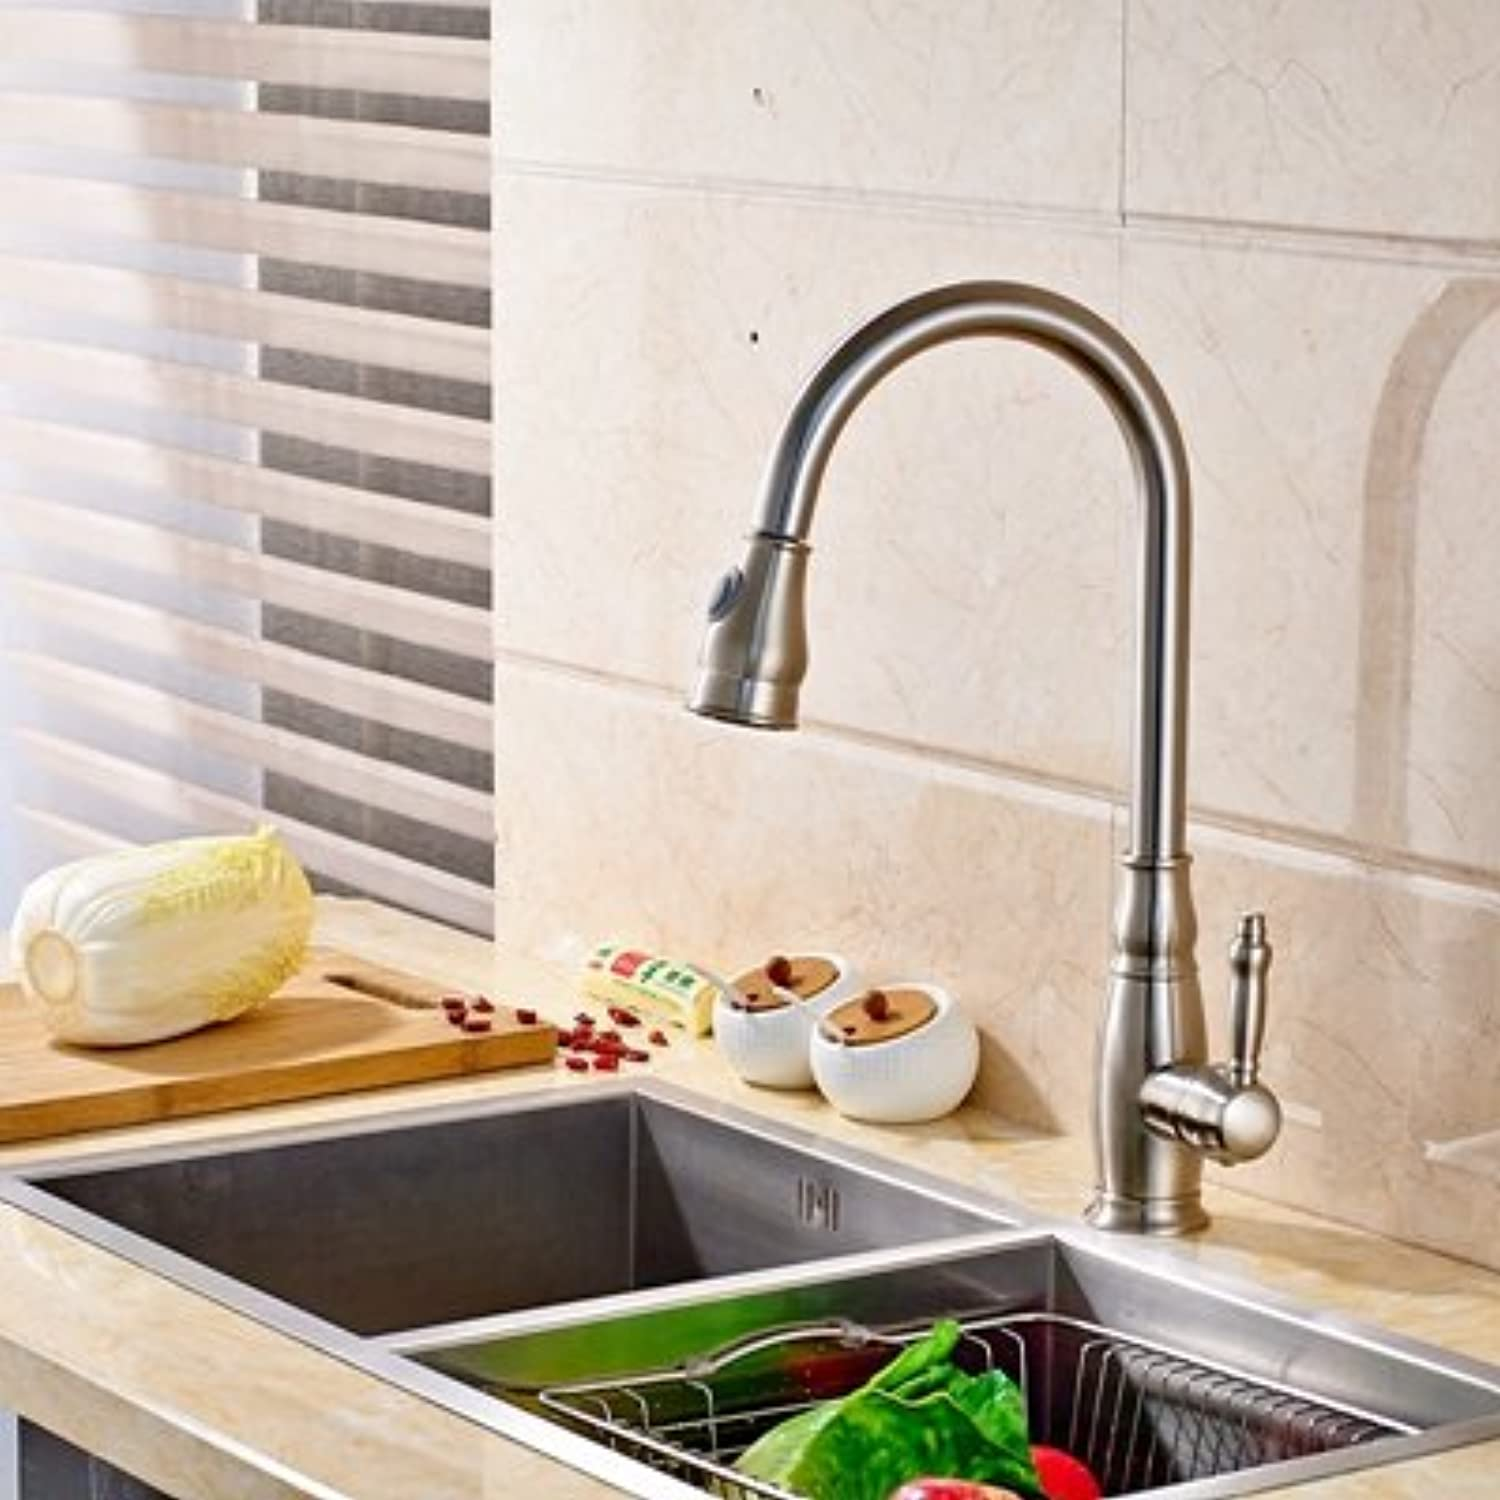 Maifeini Modern Single Lever Holes Brush Chrome-Kitchen Sinks Faucets Leading Hot In The Cold, Clearing